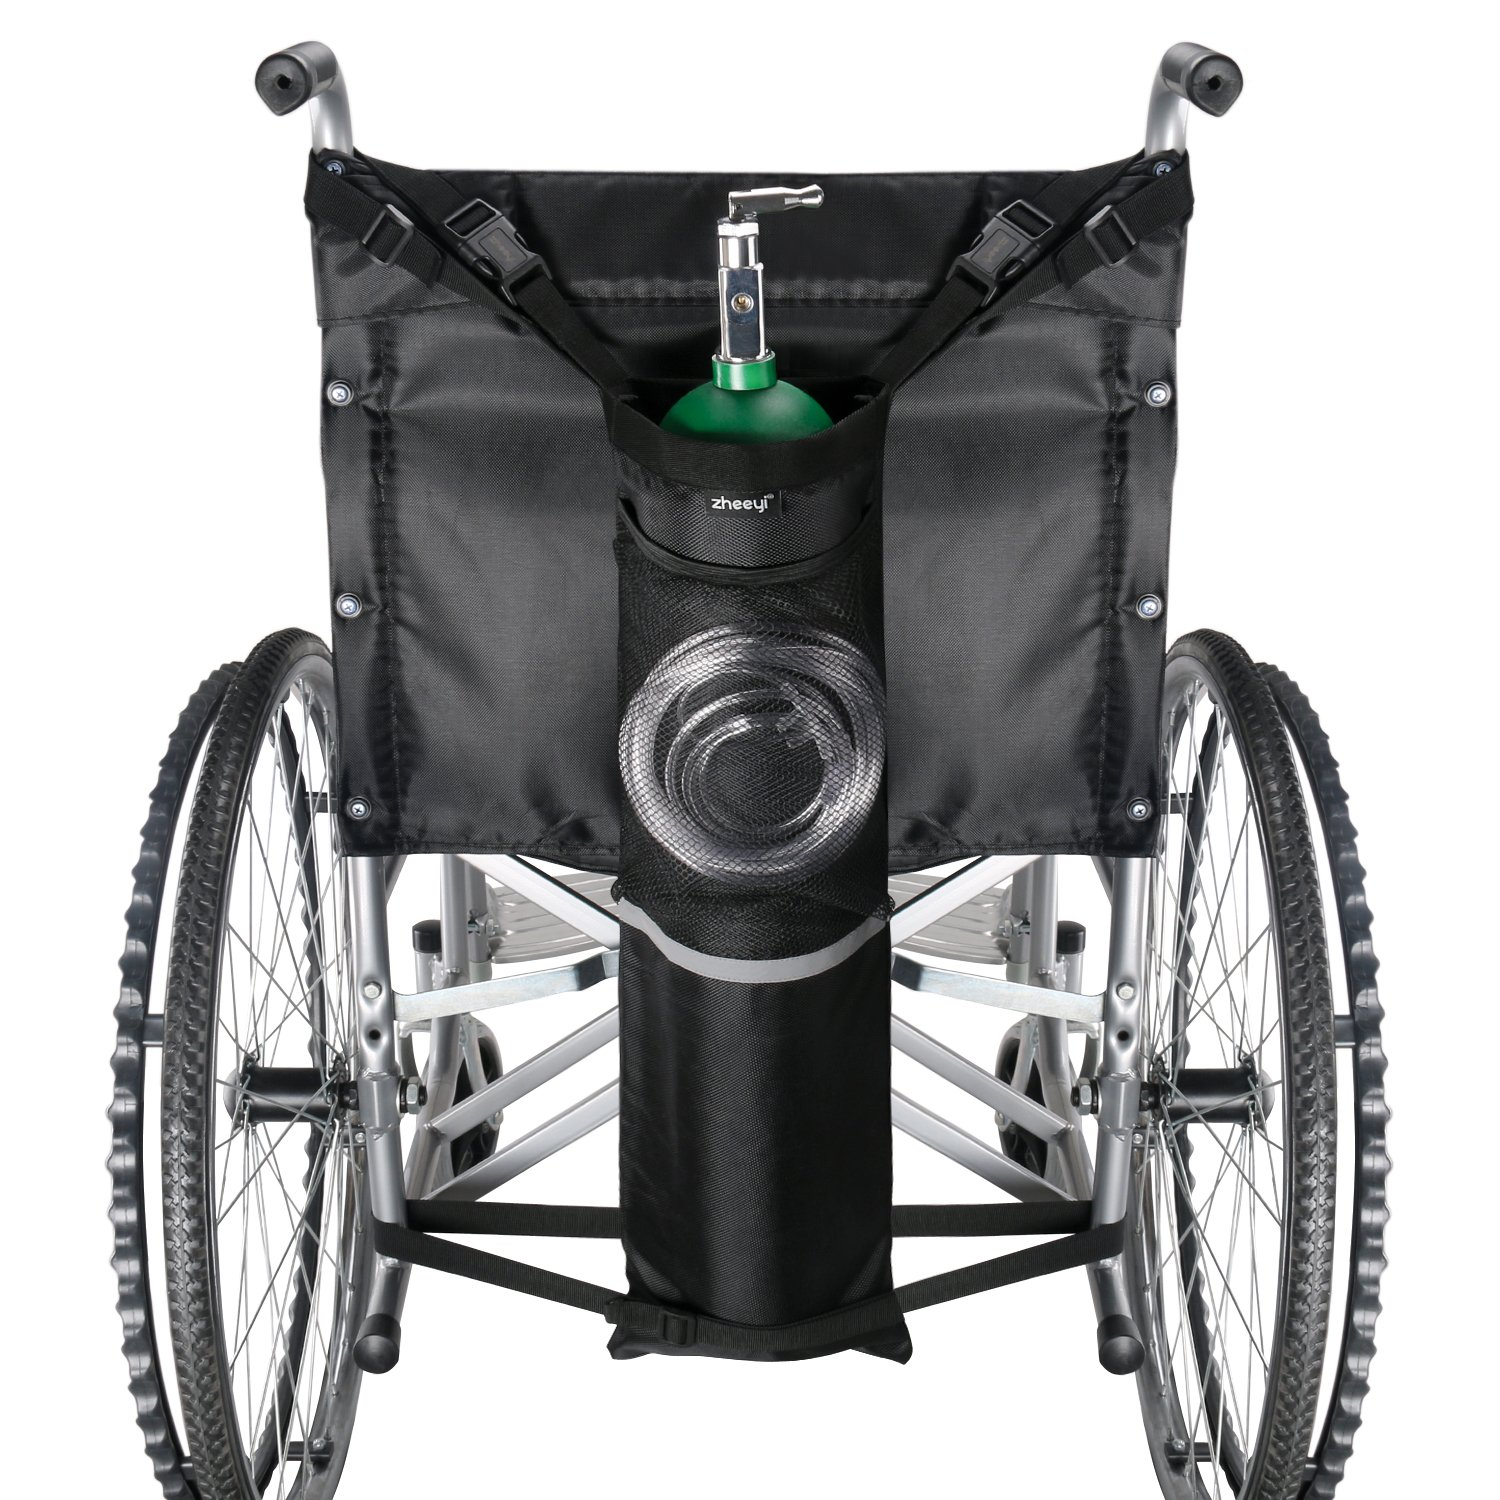 """ZHEEYI Wheelchair Oxygen Tank Holder with Buckles, Fits Any Wheelchair, Black (Fits """"D"""" and """"E"""" Cylinders)"""